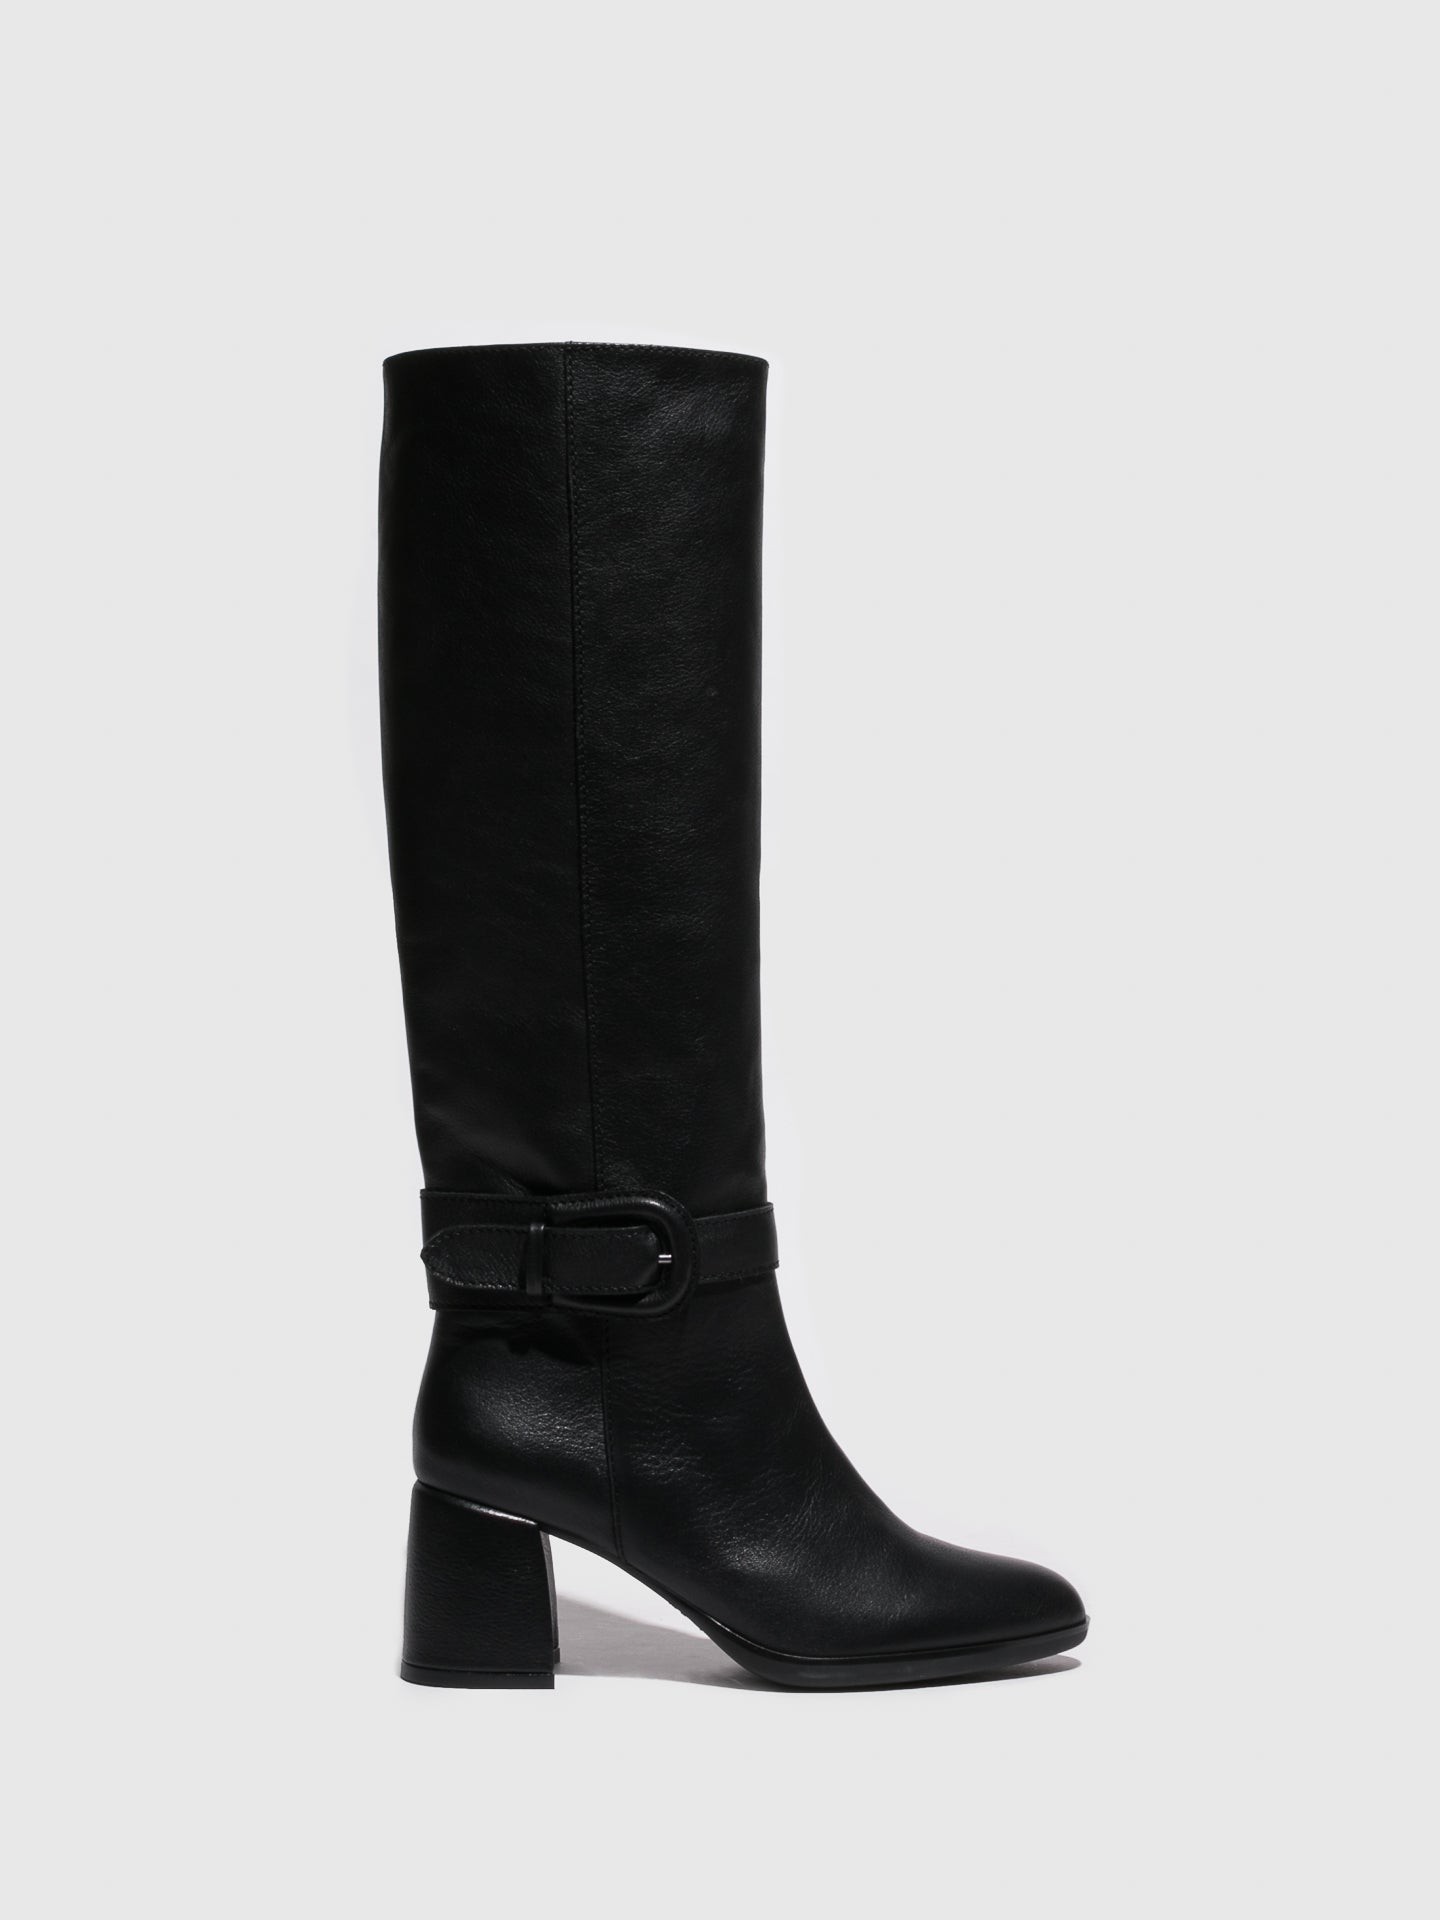 Sofia Costa Black Knee-High Boots